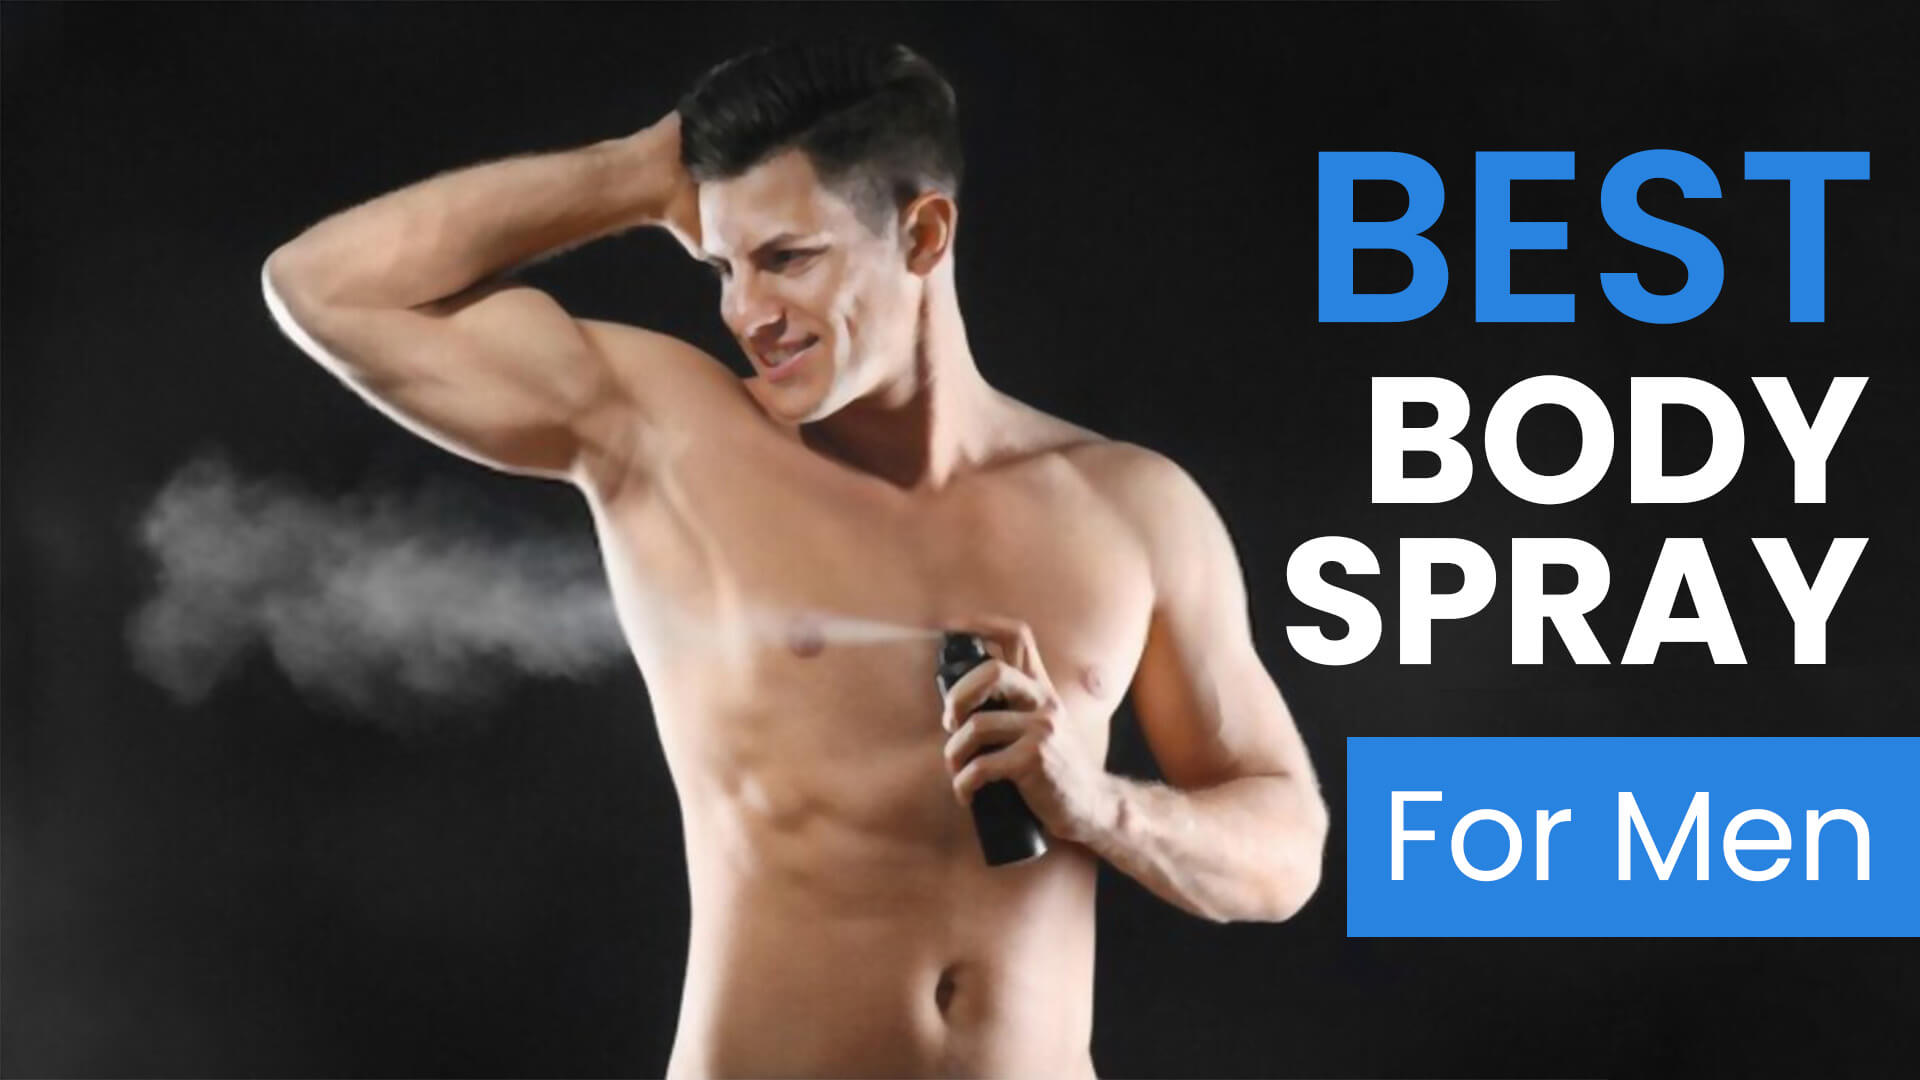 10 Best Body Spray For Men In 2021